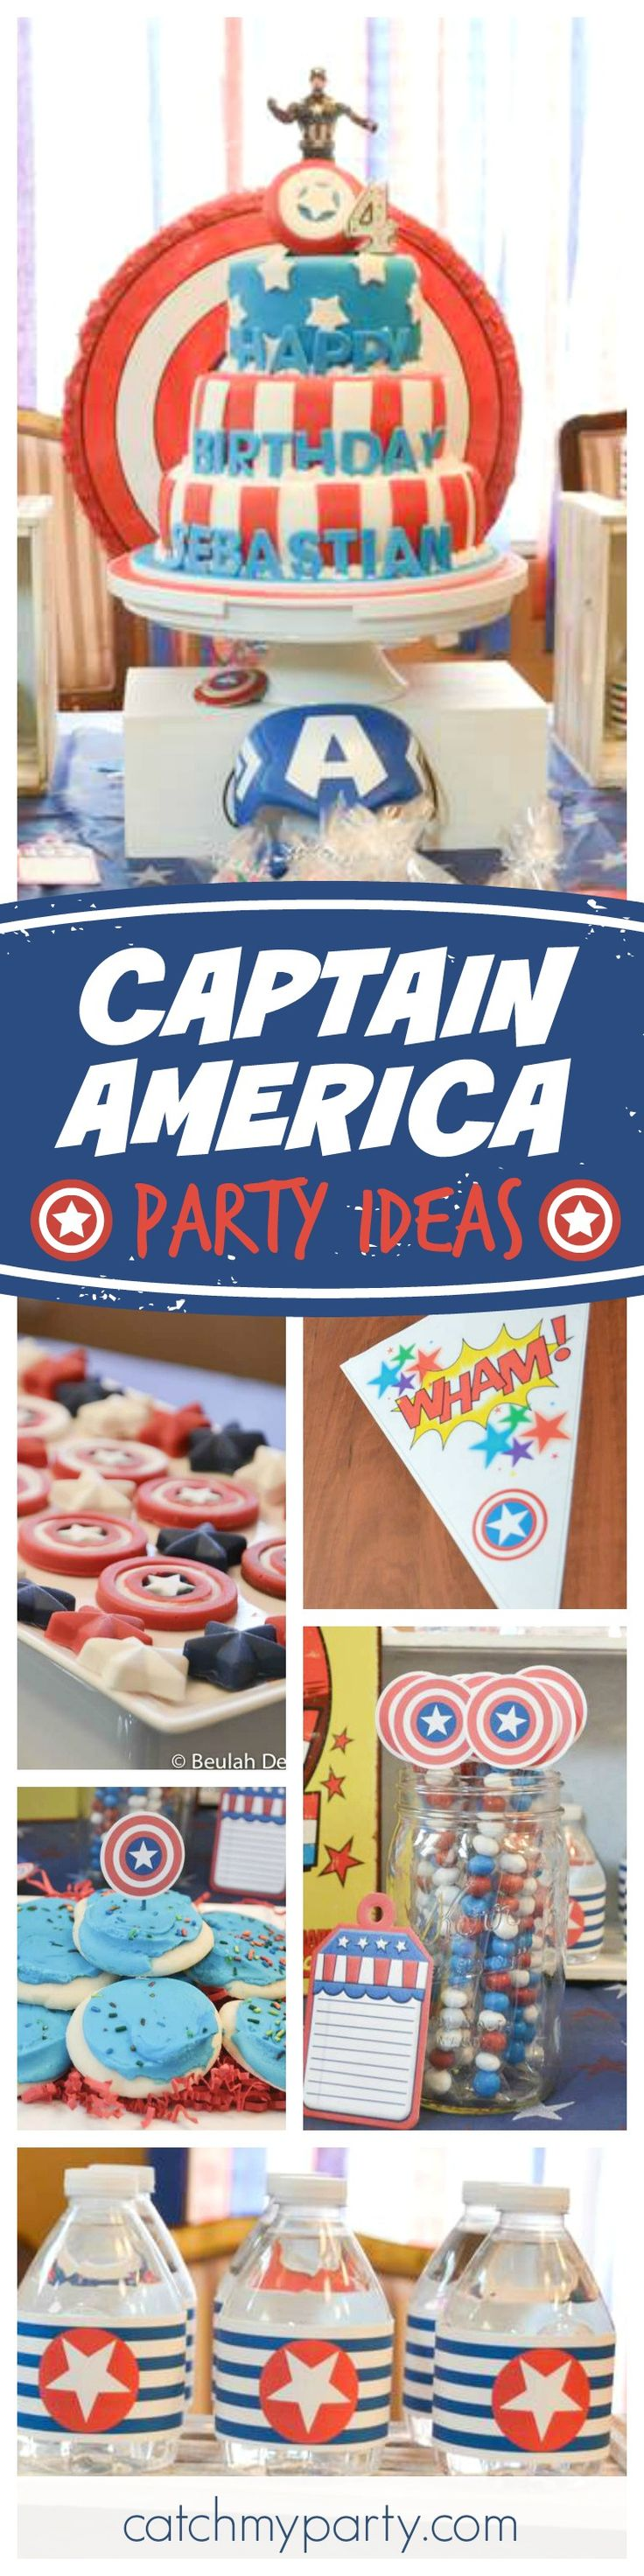 Check out this awesome Captain America birthday party. The birthday cake is so cool! See more party ideas and share yours at CatchMyParty.com